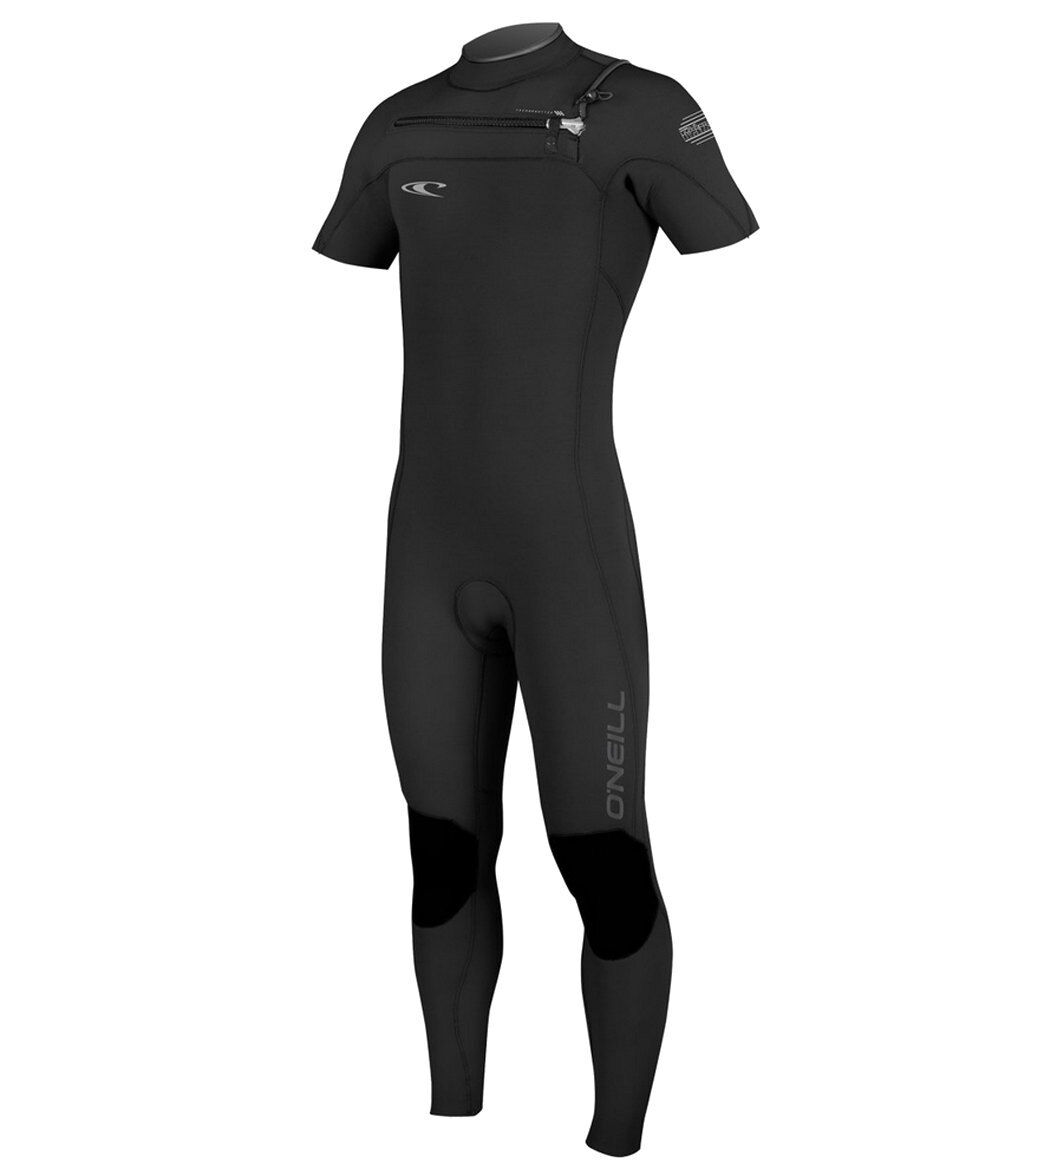 O'NEILL Men's 2mm HYPERFREAK FZ S S Wetsuit - BLK BLK GRAPH - Size Small - NWT